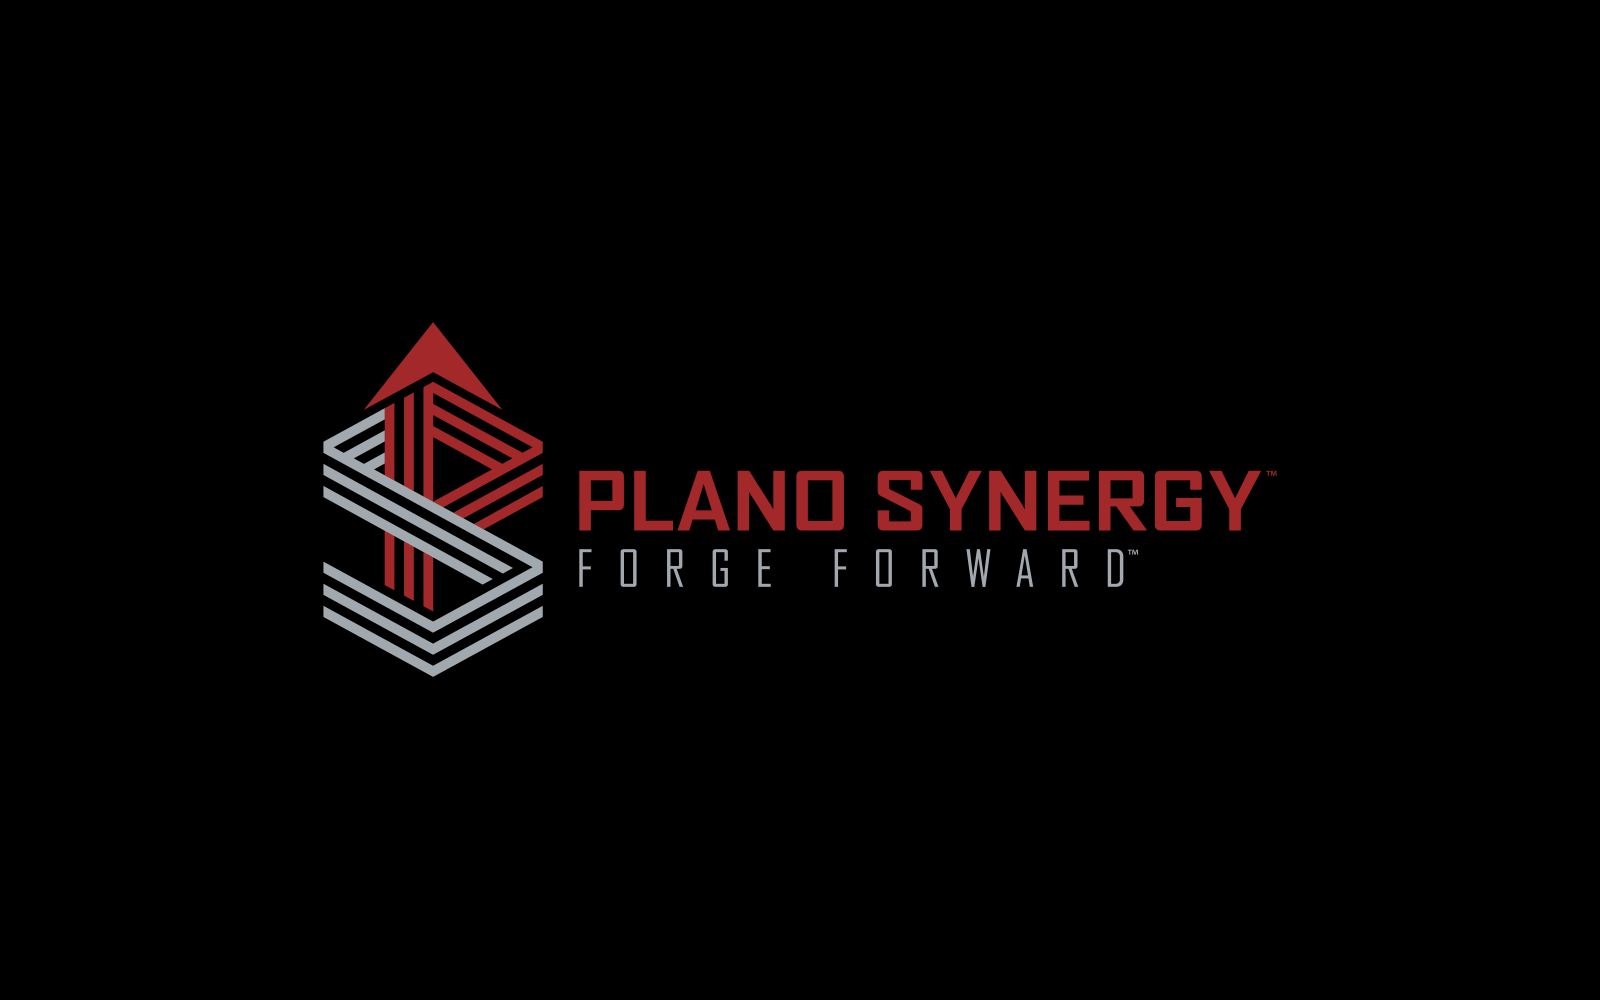 Home | Plano Synergy